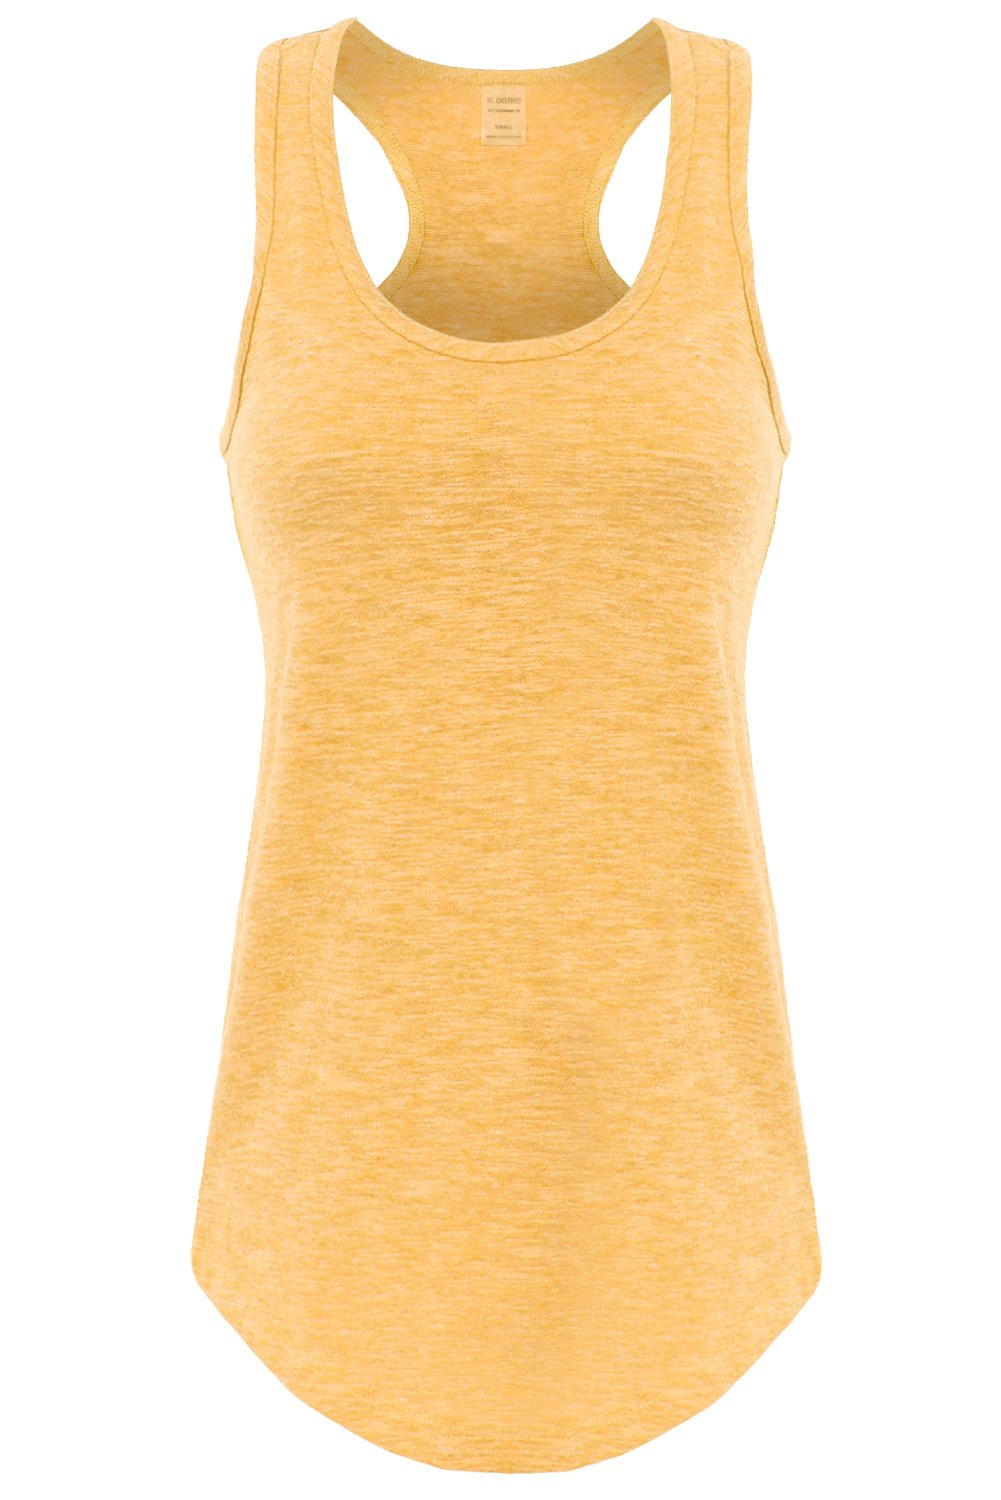 JC DISTRO Women's Basic Jersey Racer-Back Tank Top with Scallop Bottom